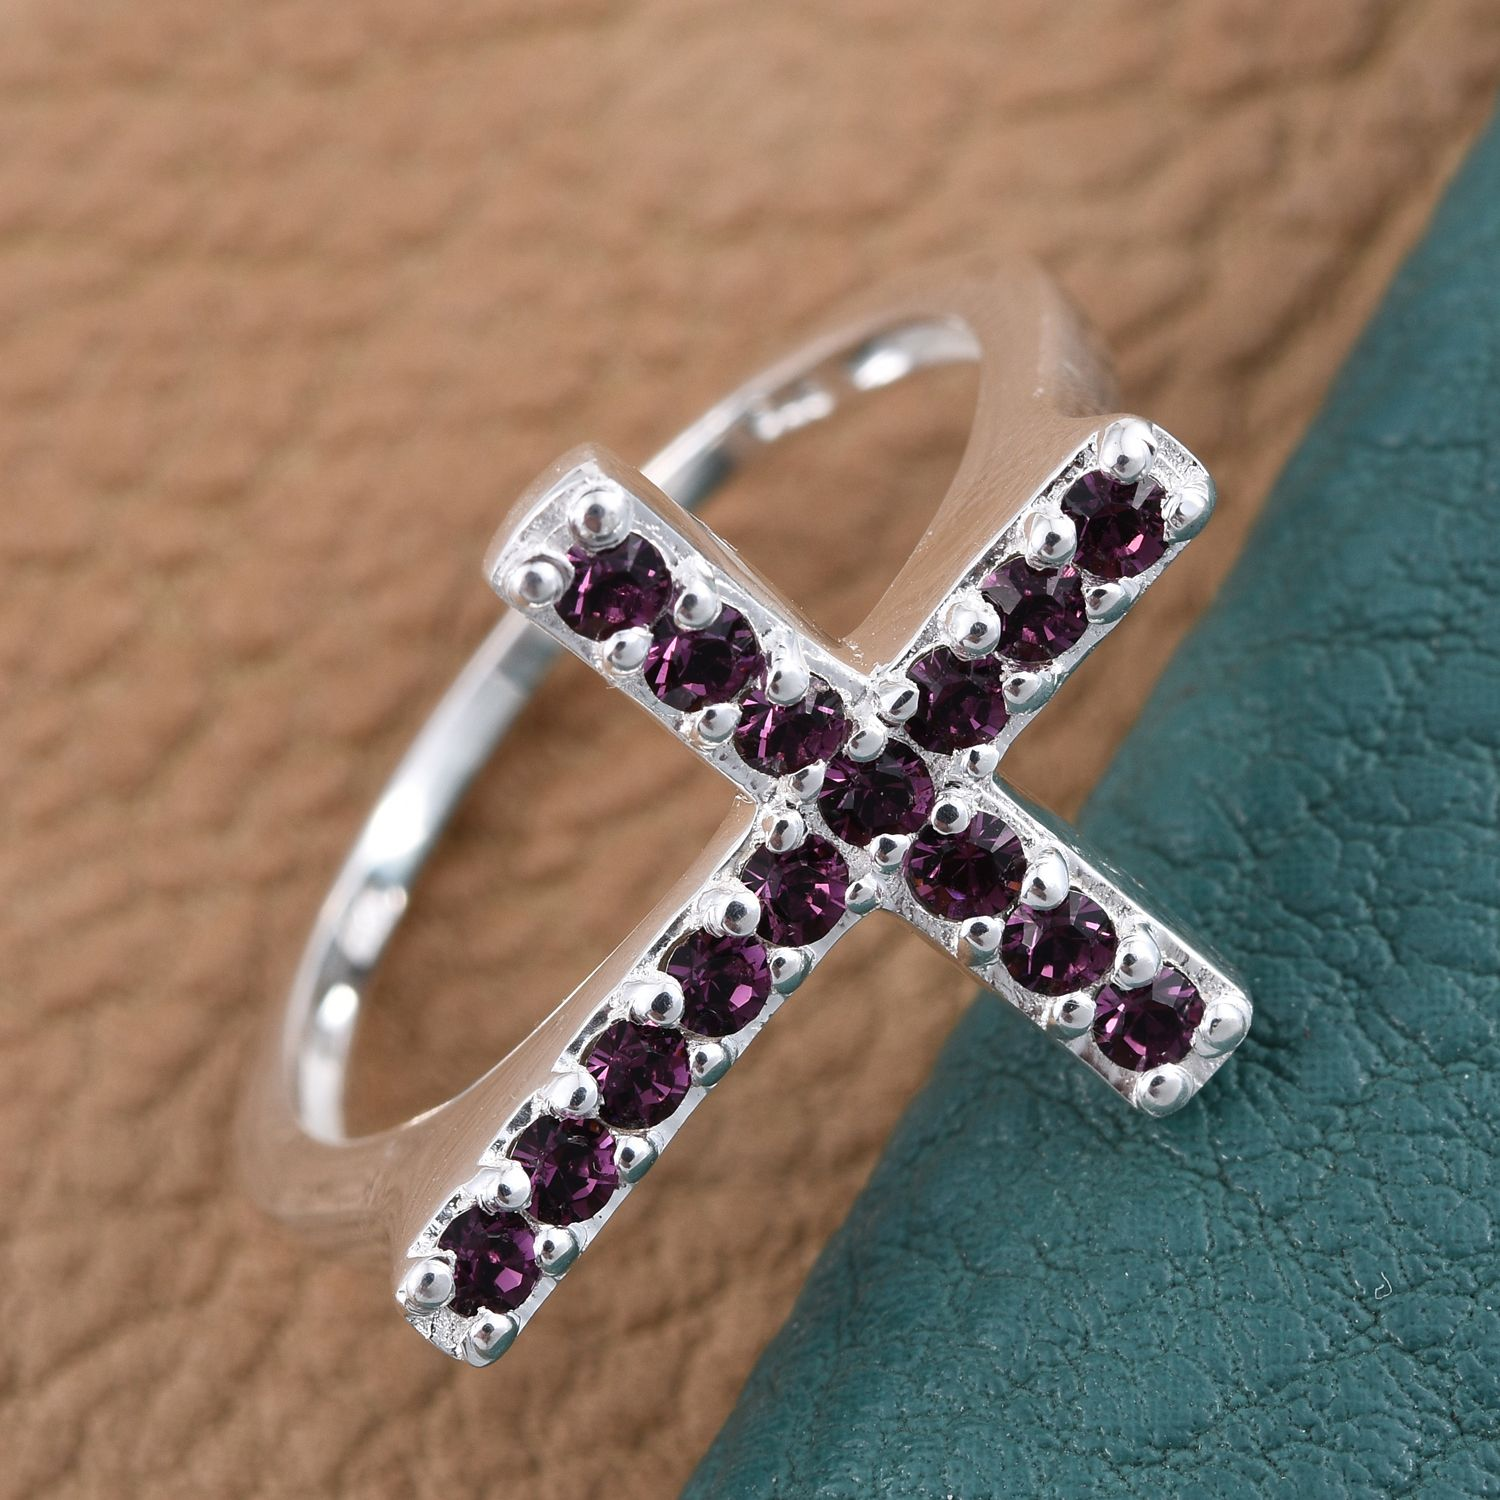 12e4bfe8e ... Sterling Silver Side Cross Ring (Size 7.0) Made with SWAROVSKI Purple  Crystal TGW 0.41 ...